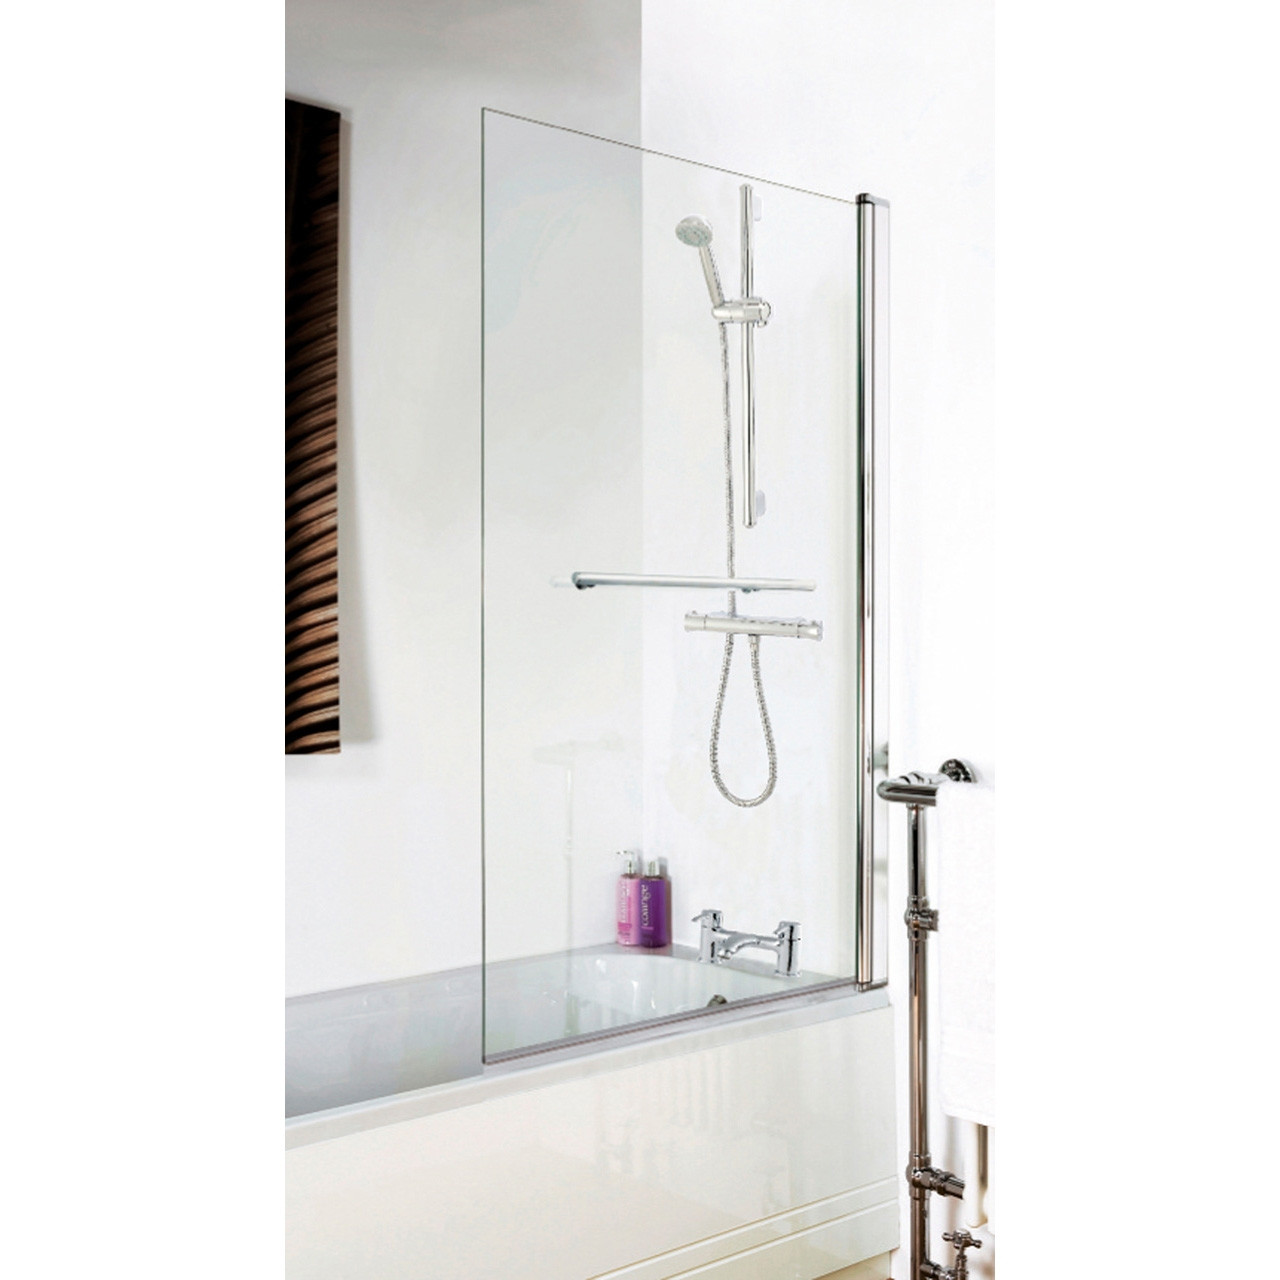 Premier Square Bath Screen with Rail - NSSQR